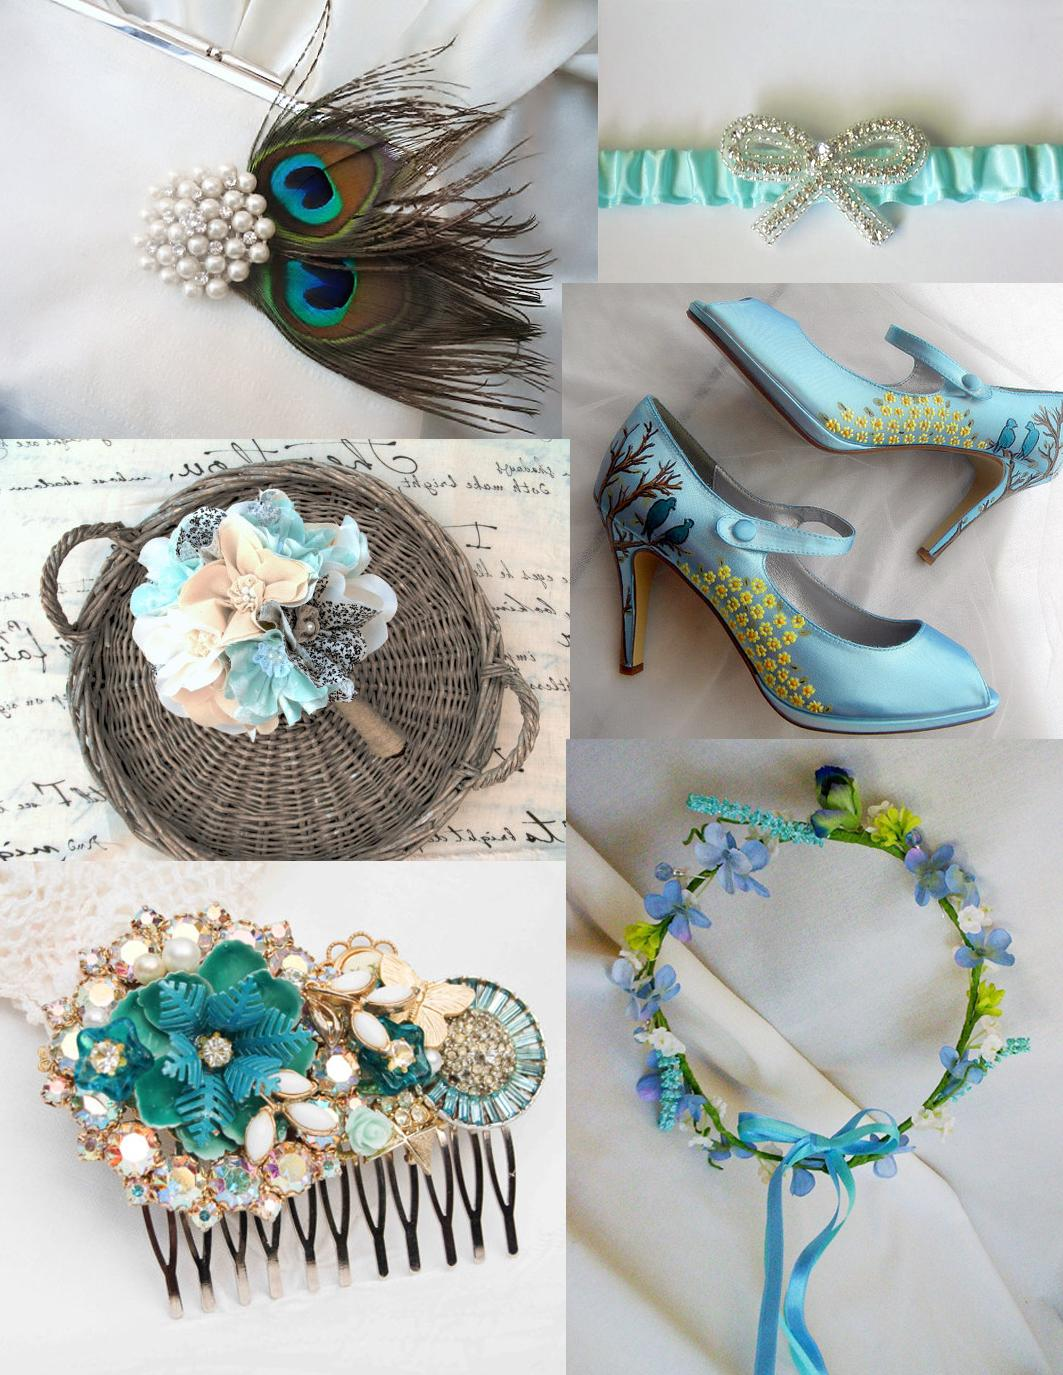 blue wedding items from Etsy